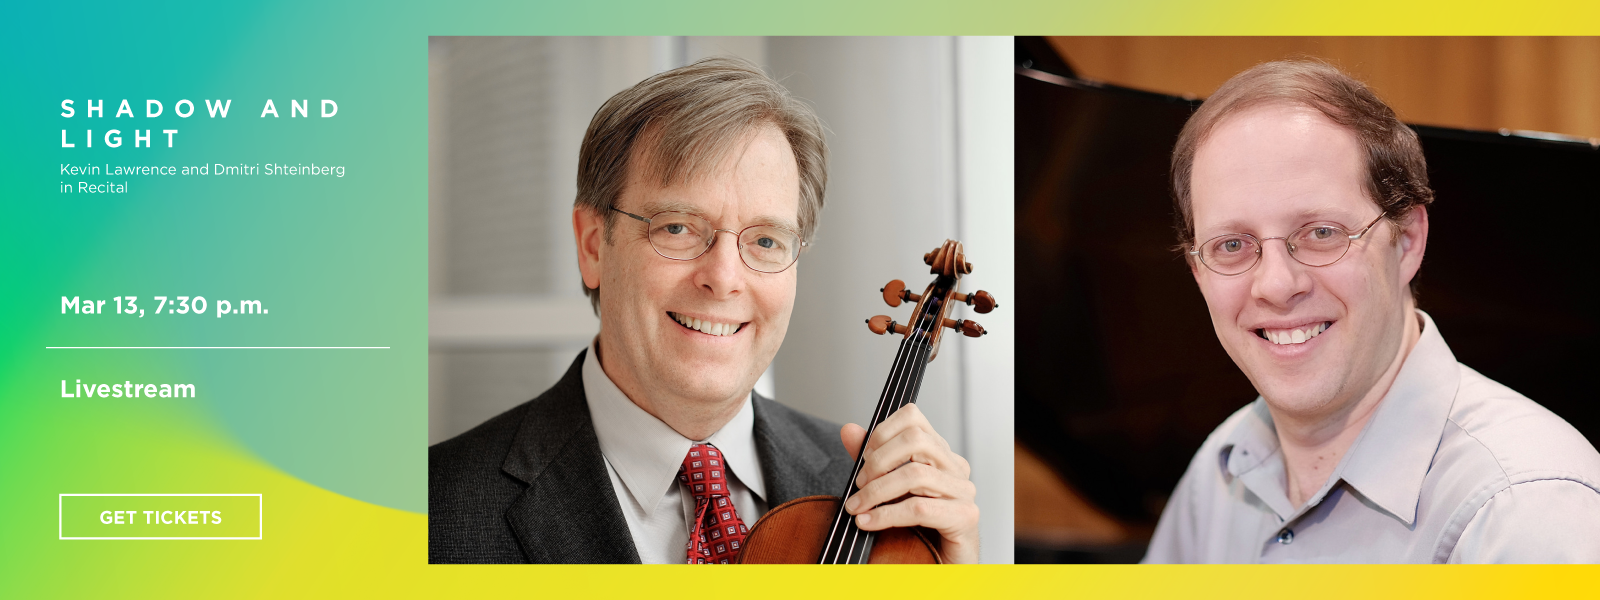 Shadow and Light: Kevin Lawrence and Dmitri Shteinberg in Recital - Livestream